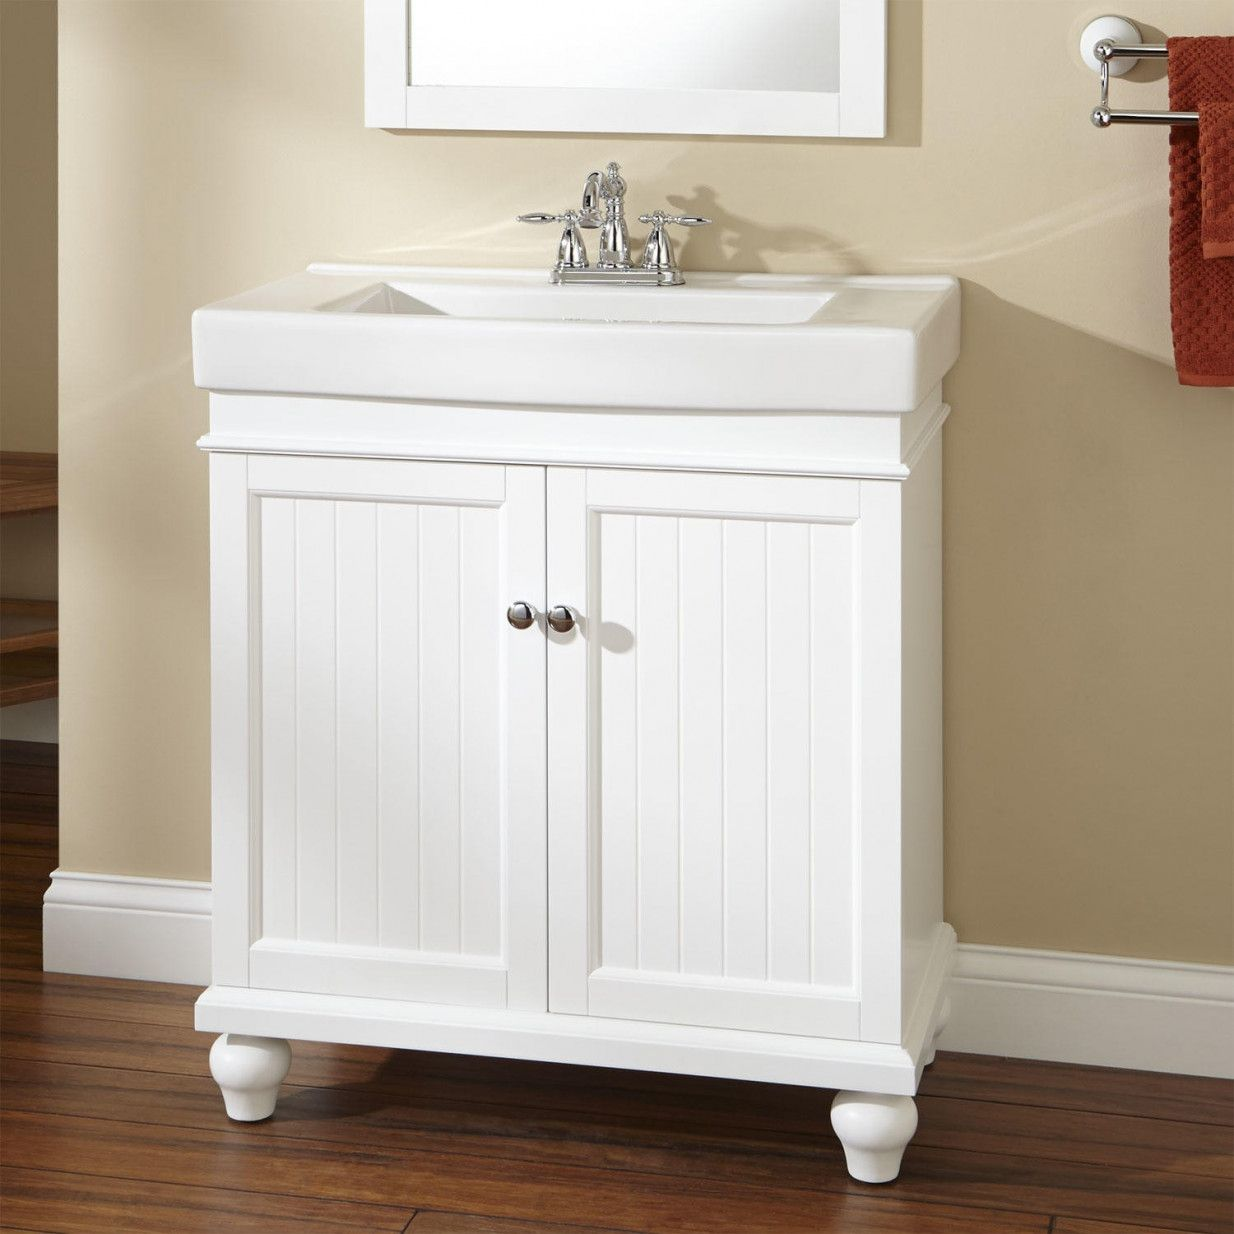 70+ Bathroom Vanity Cabinets Cheap - Modern Interior Paint Colors ...